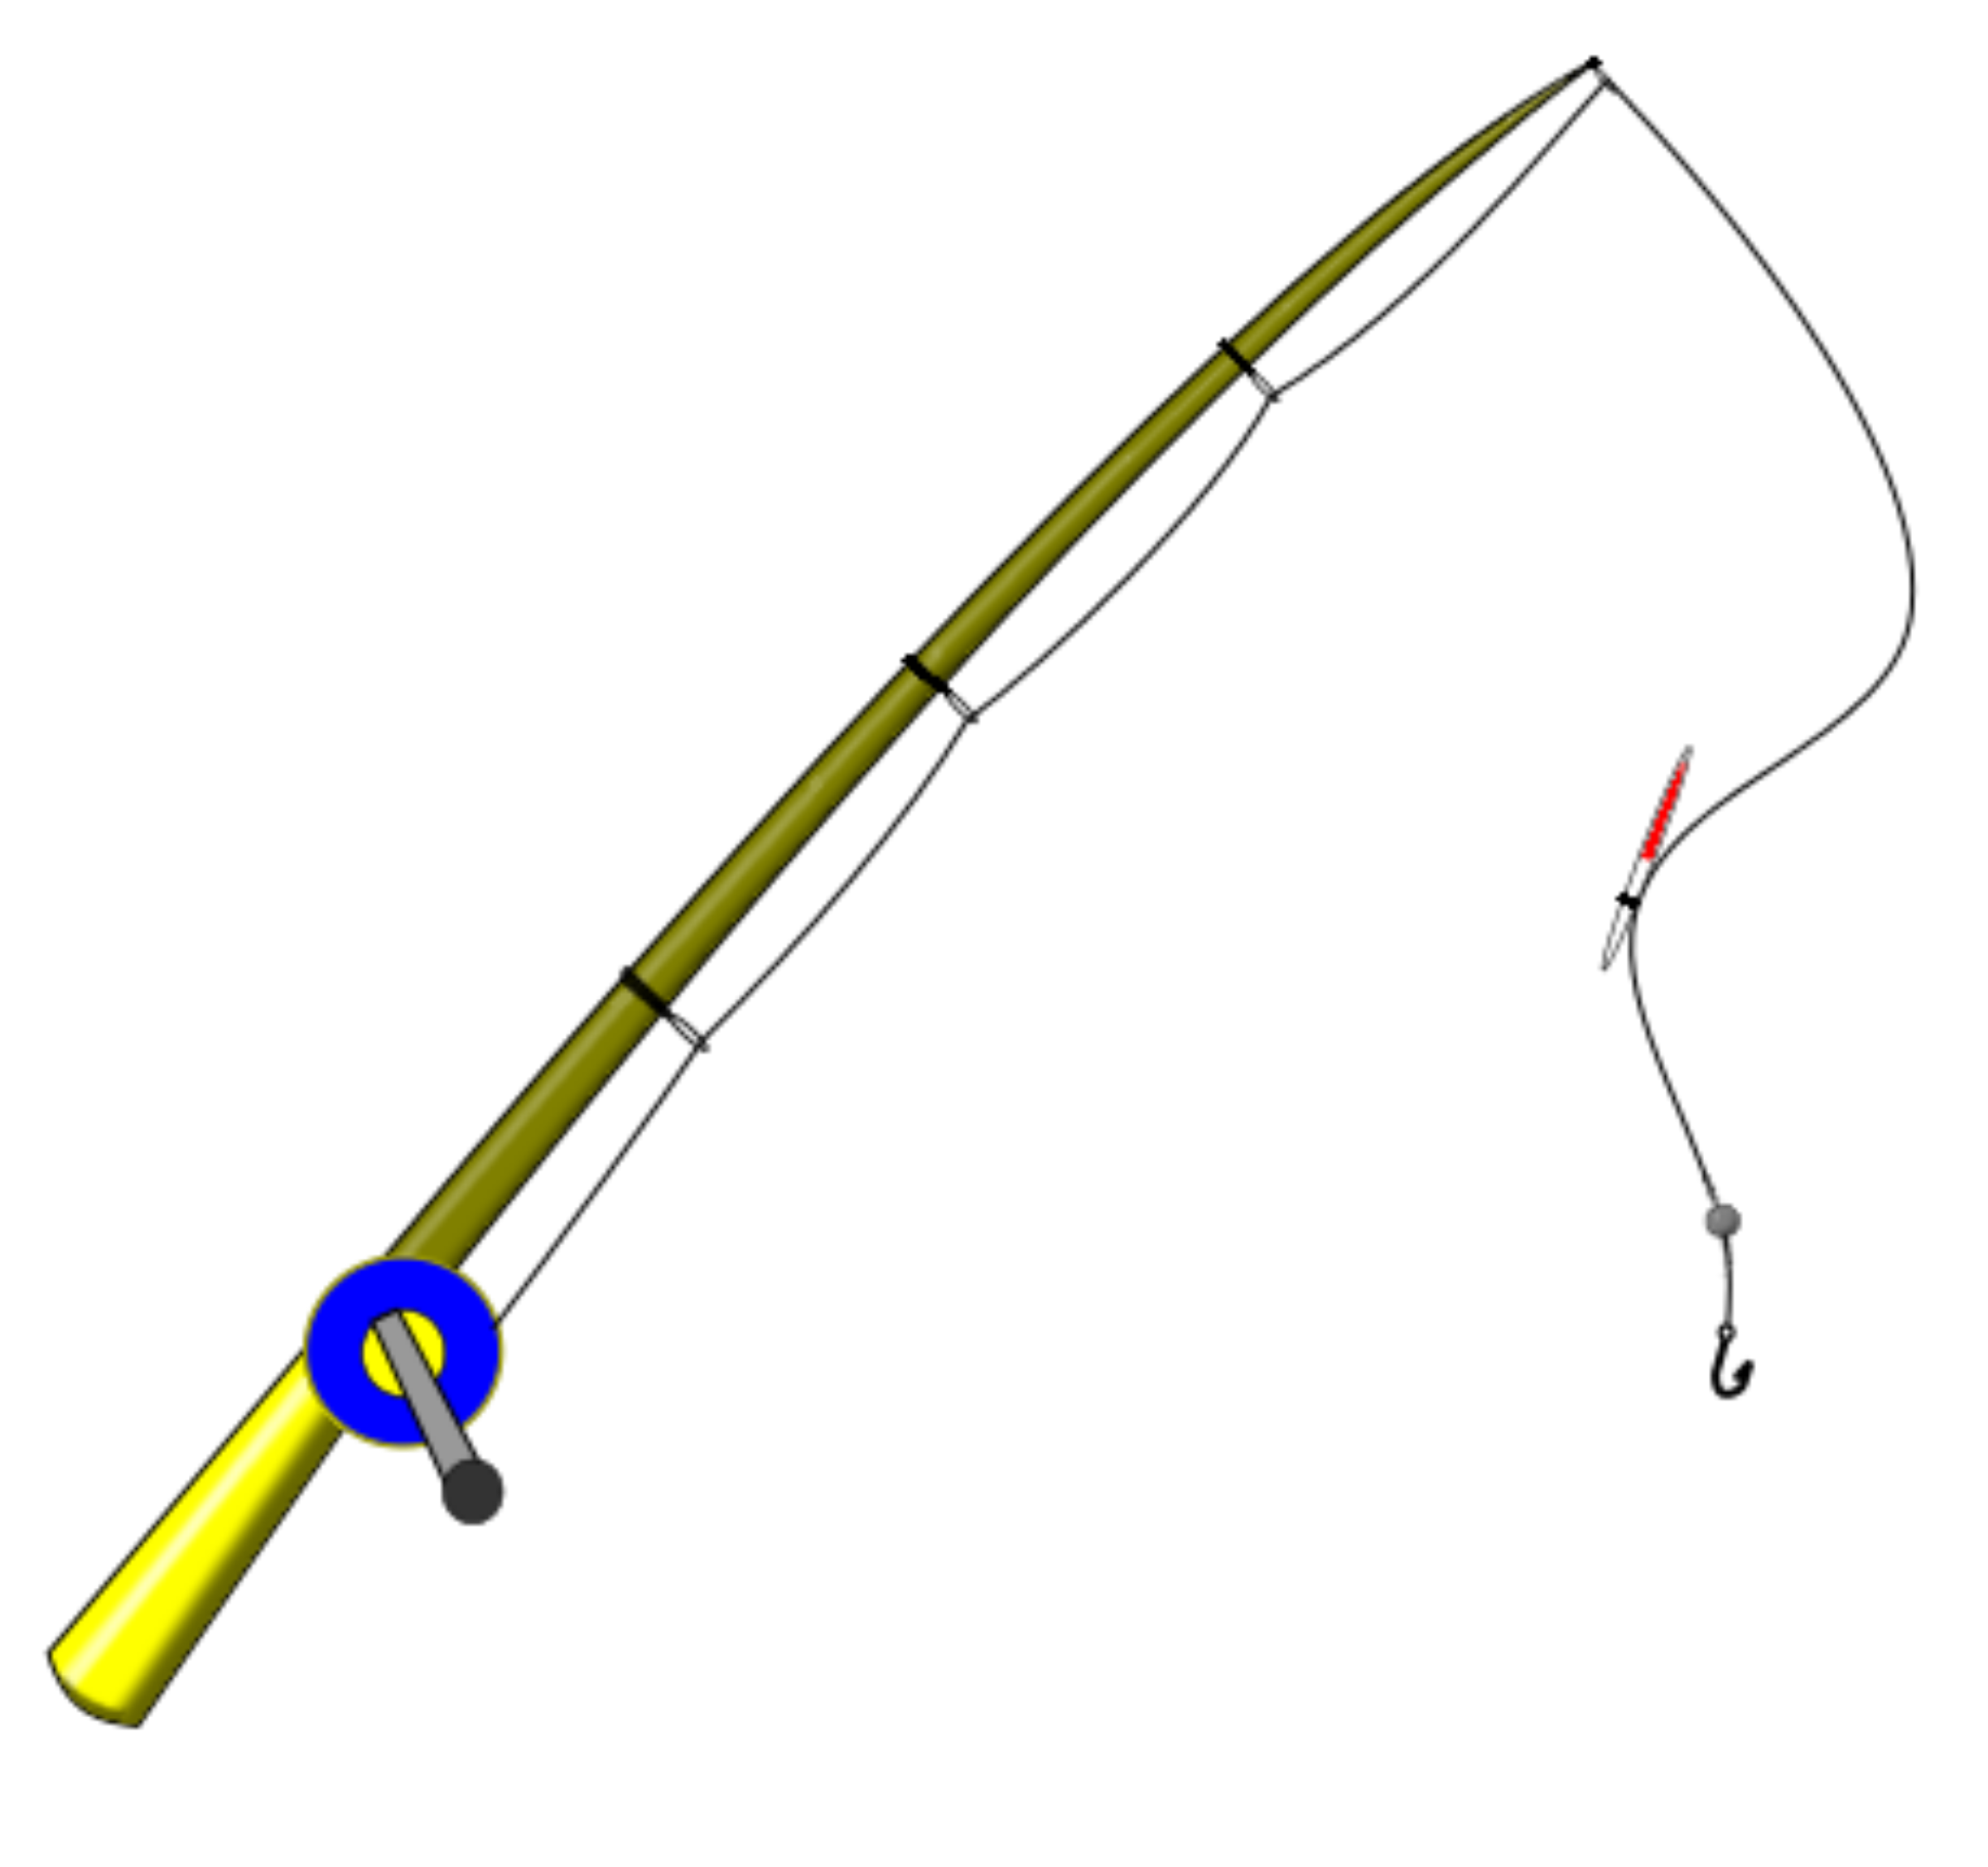 Fishing Pole Clipart Fishing Rod Image 2-Fishing pole clipart fishing rod image 2-6